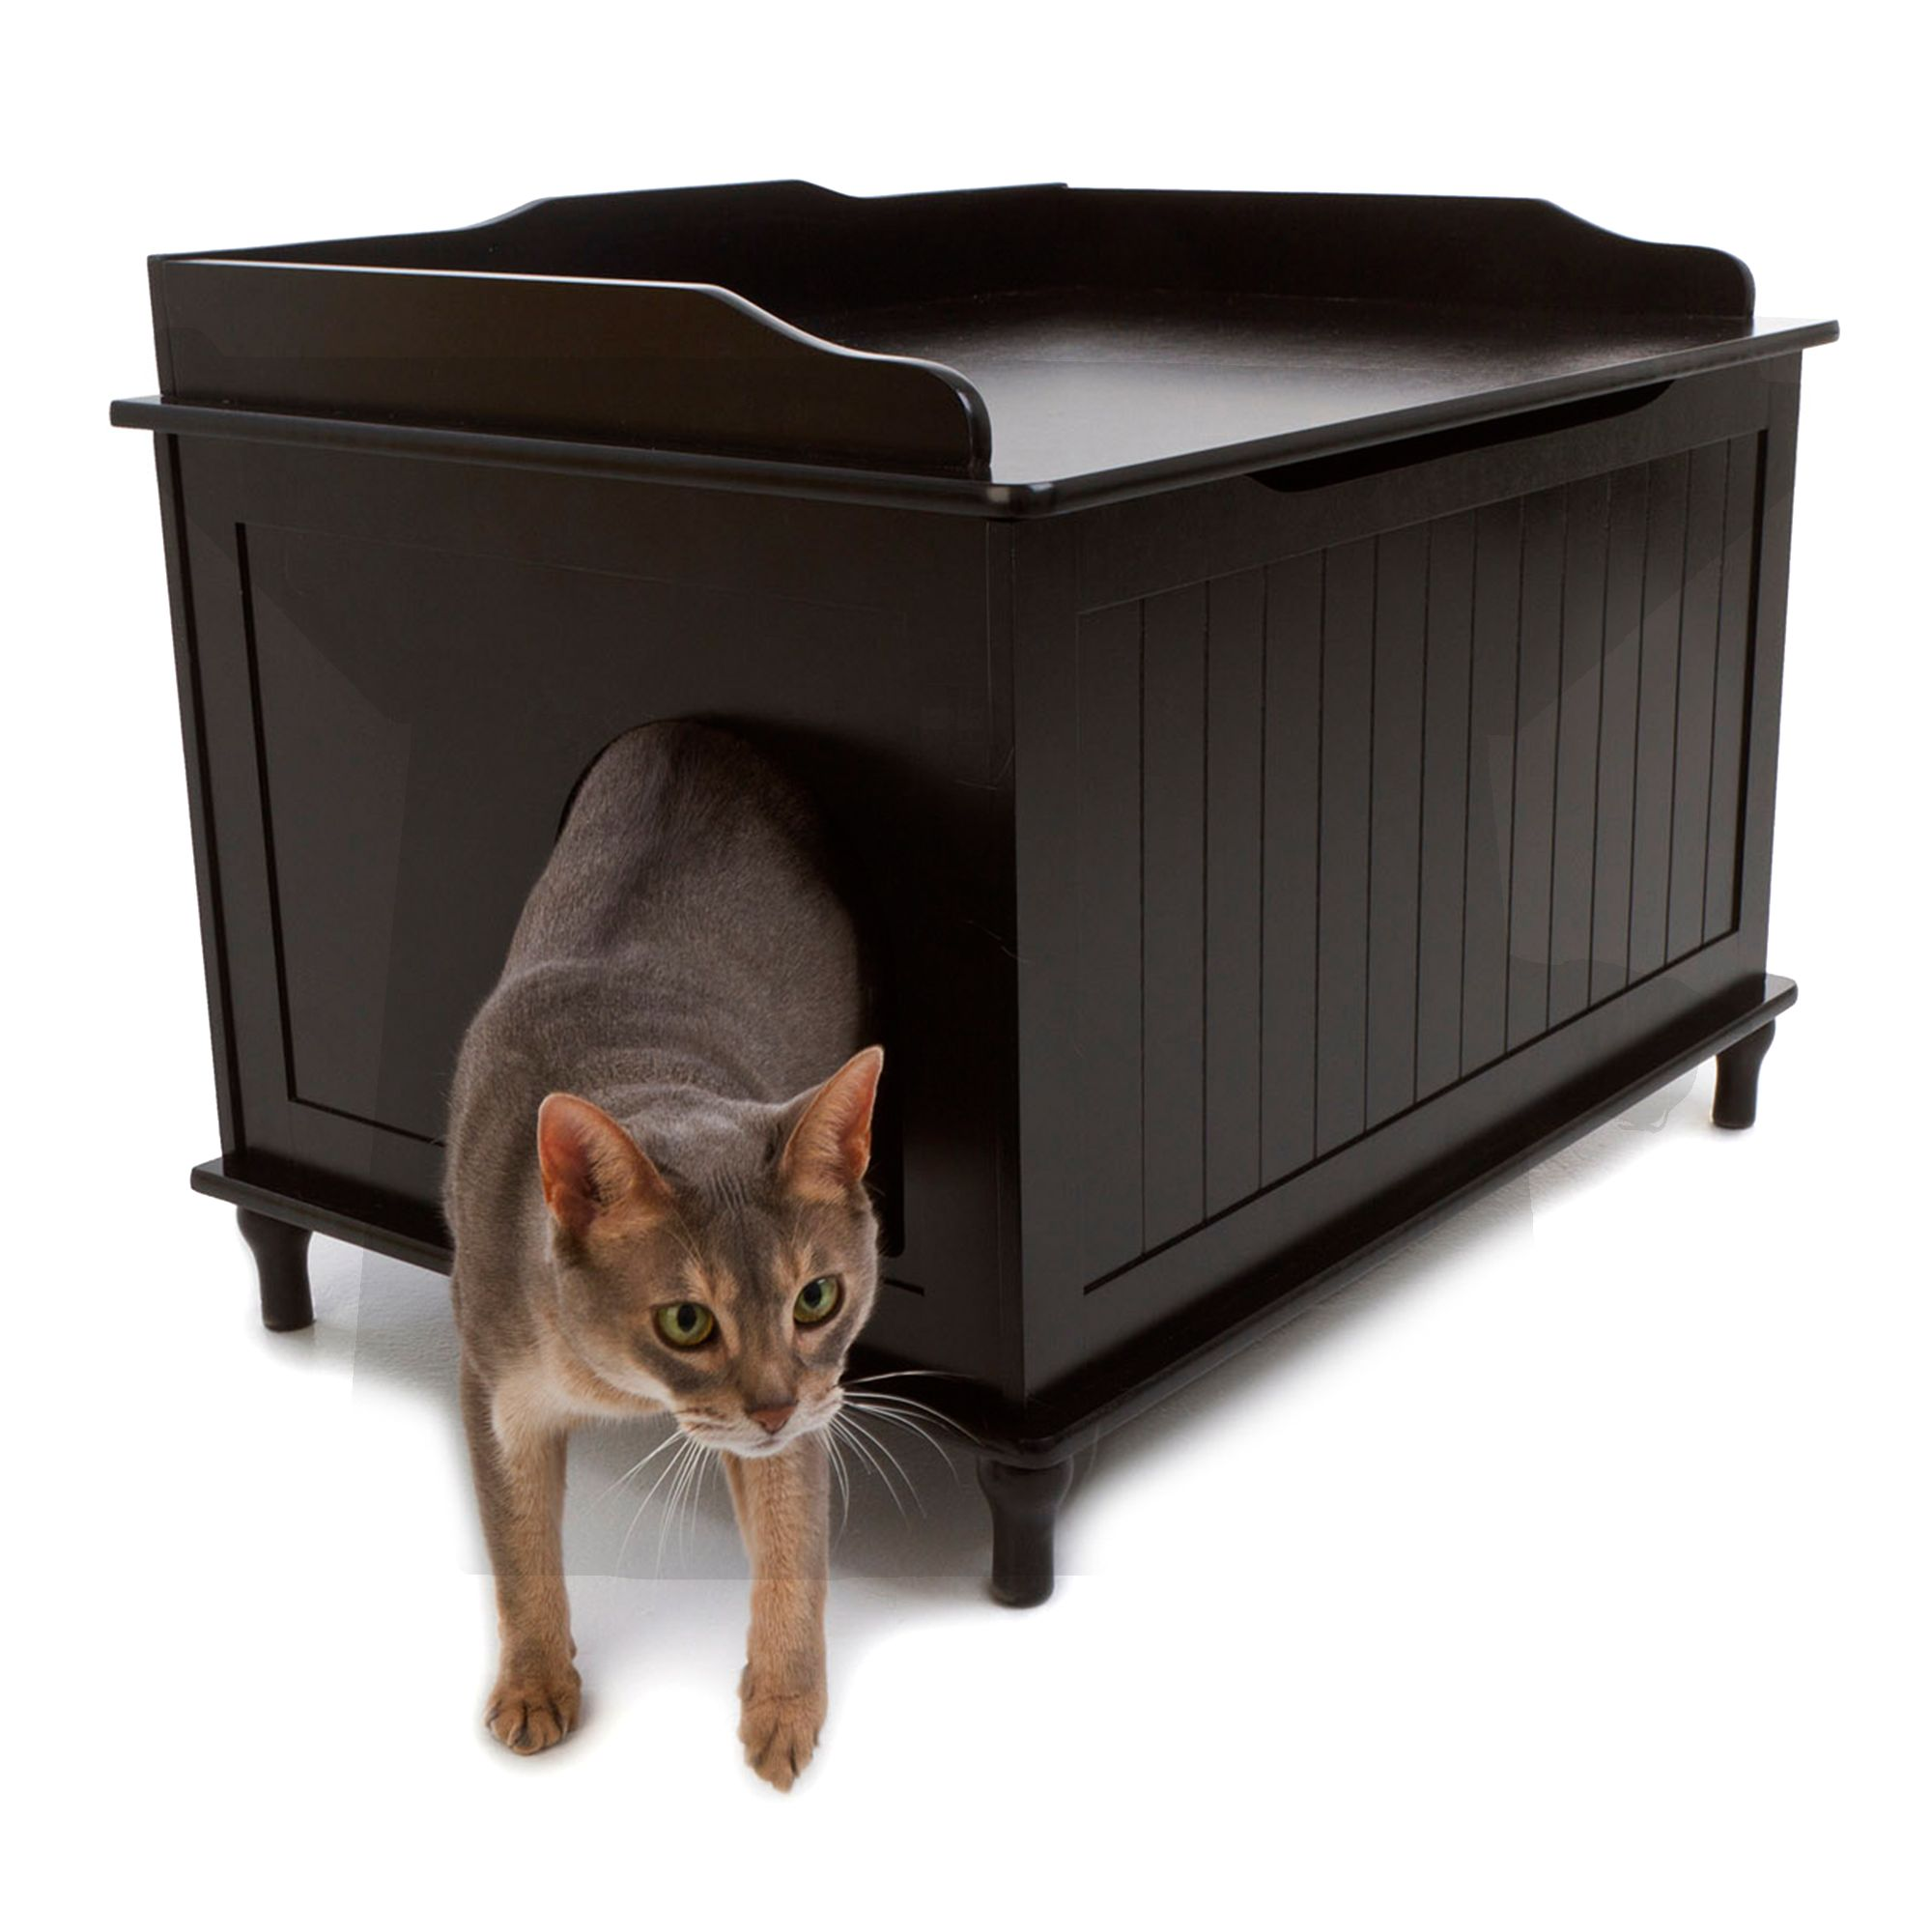 Designer Pet Products Designer Cat Litter Box Size 29.1l X 20.6w X 20.8h Black